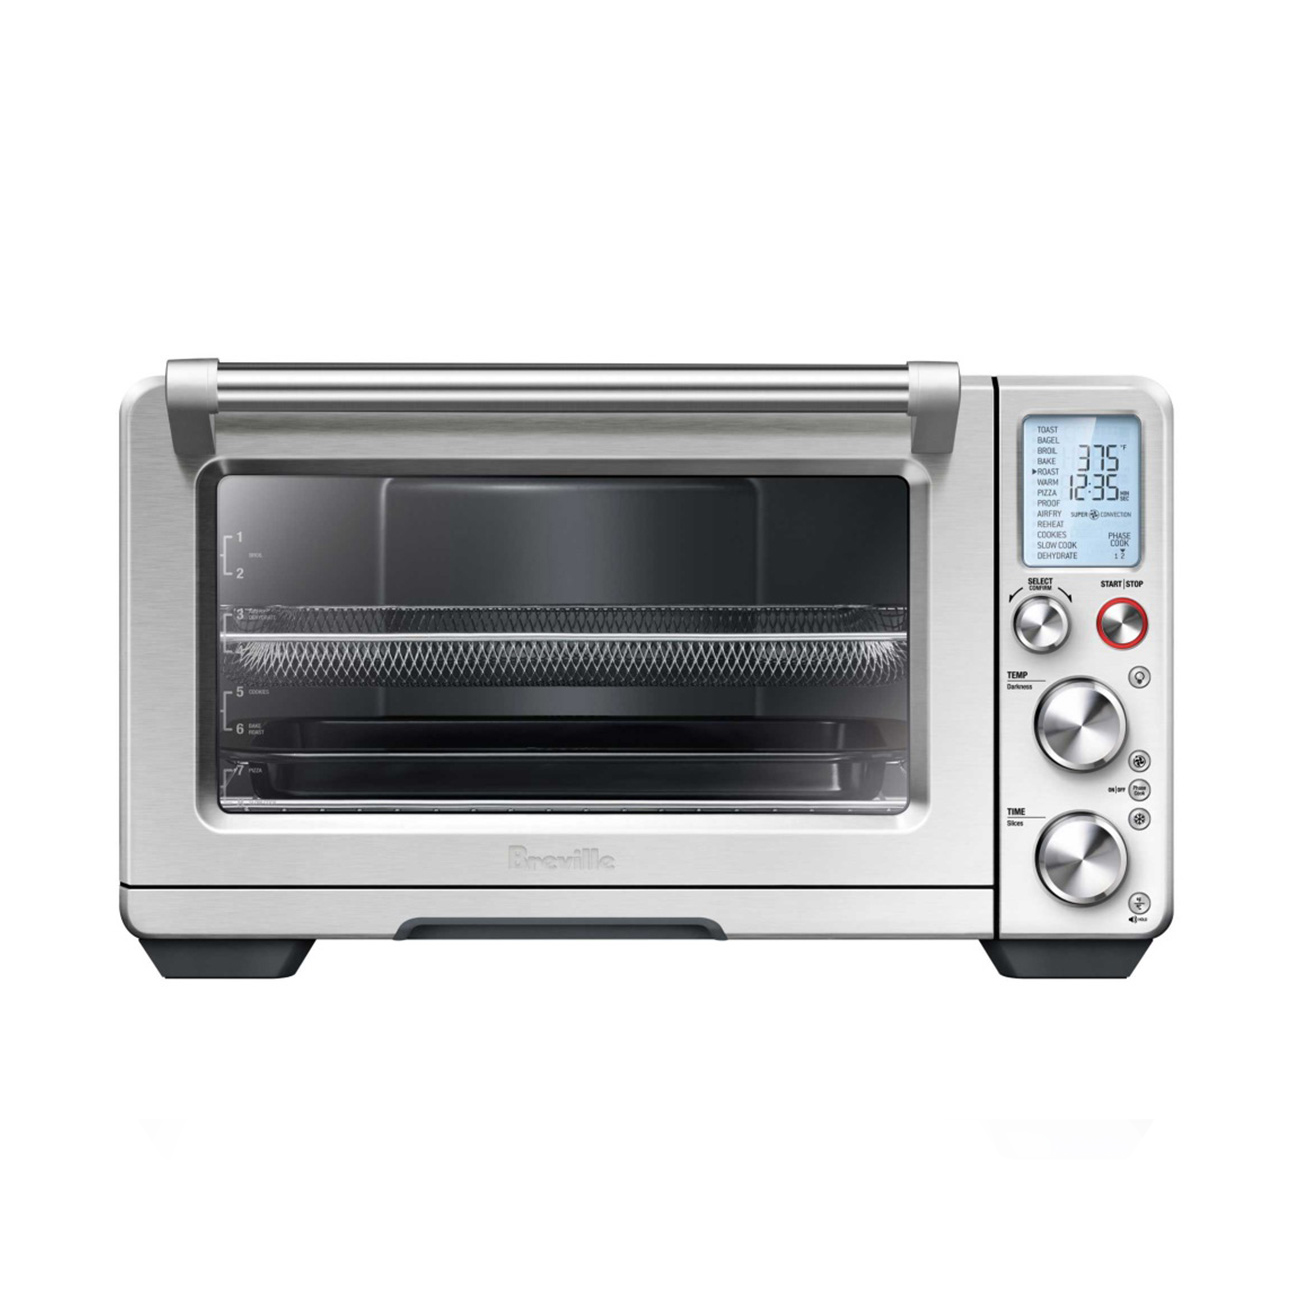 The Smart Oven 174 Air Fryer Breville